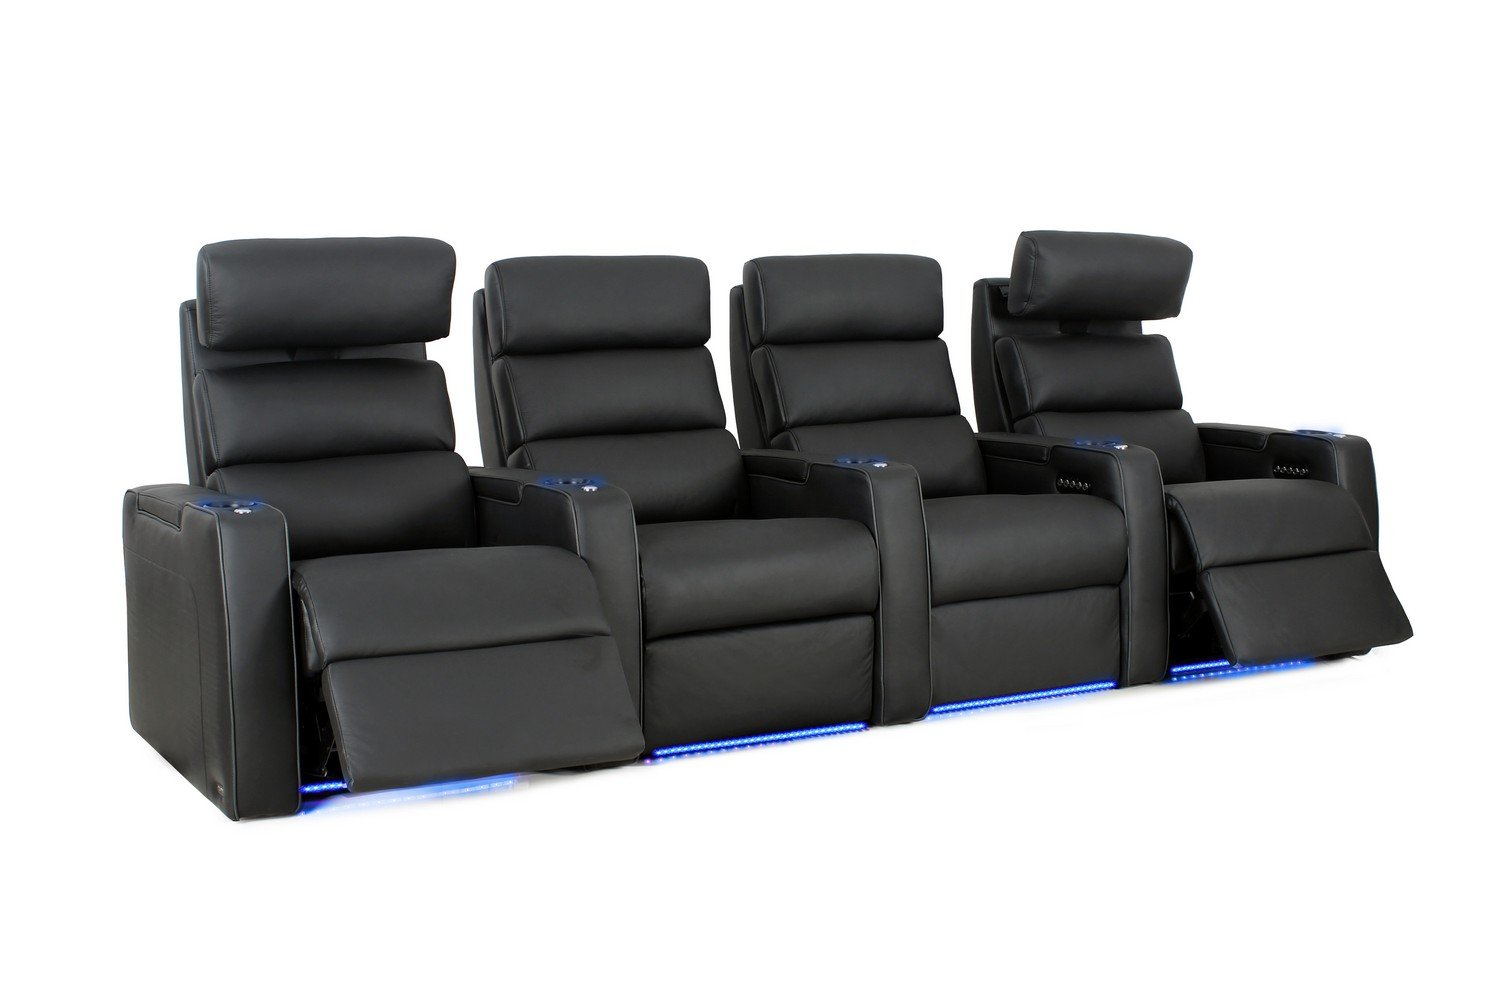 Dream HR - Octane Seating - Home Theater Seats - Black Top Grain Leather - Power Recline - Row of 4